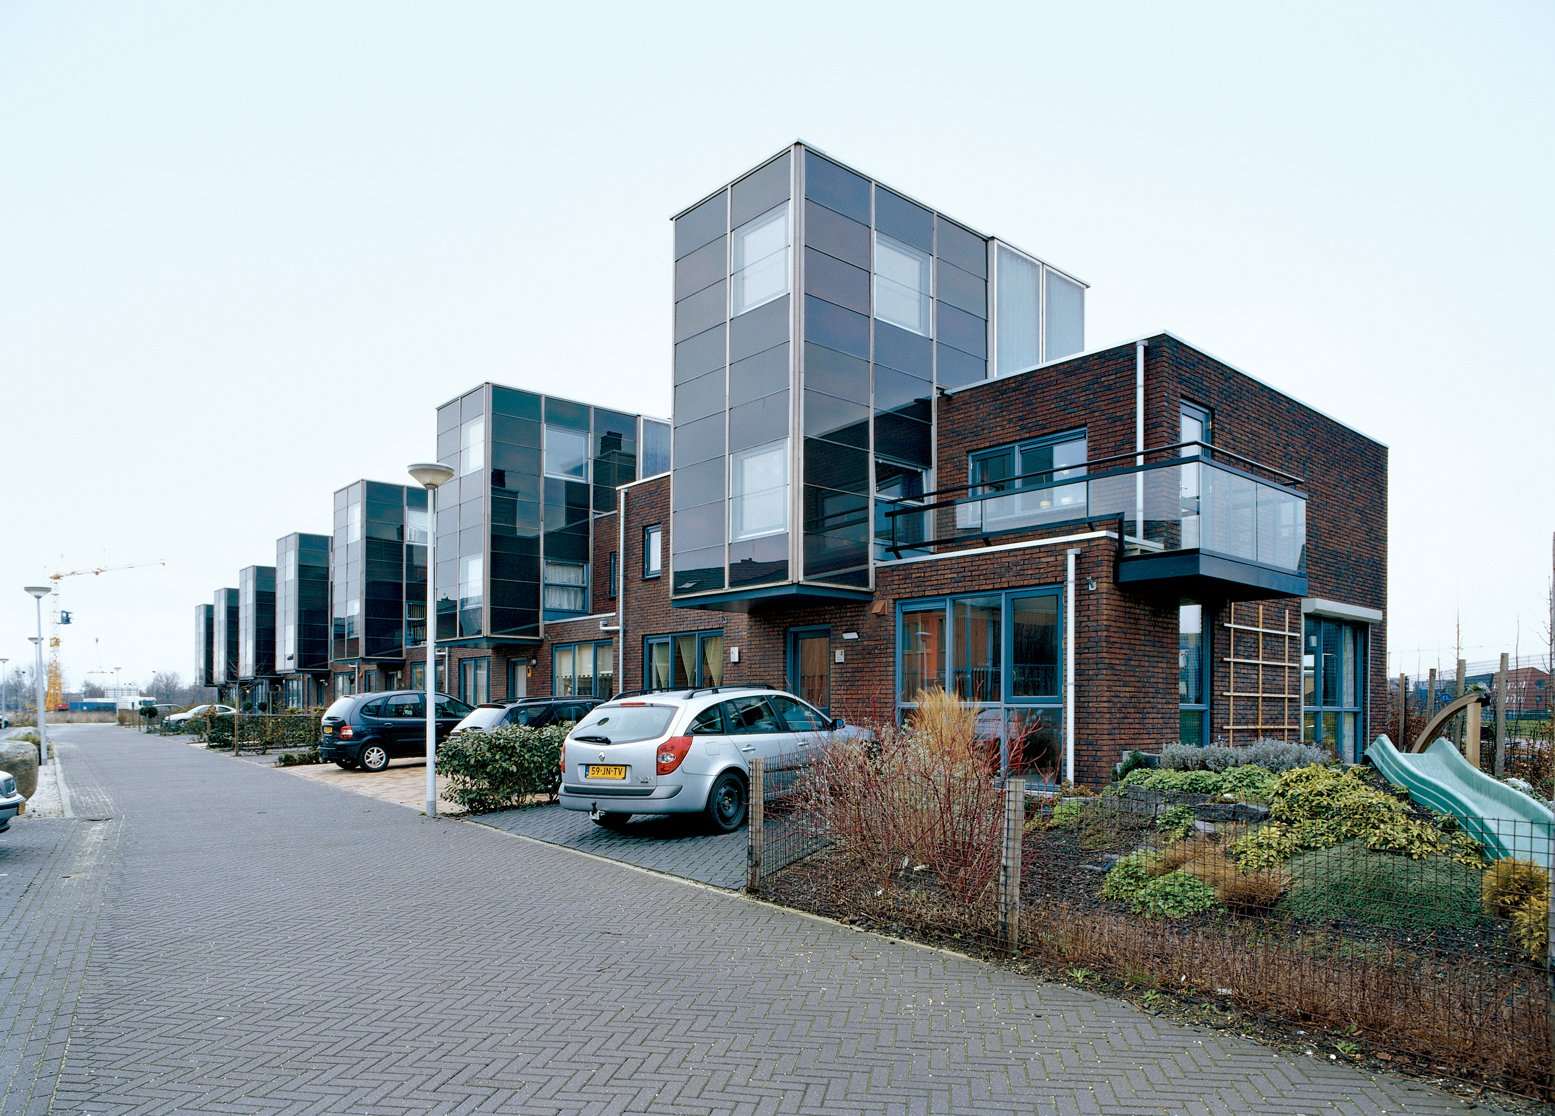 """Arranged and slotted together like a tidy row of Legos, the IJsselstein housing project reflects typical Dutch efficiency, """"not just in terms of materials used,"""" notes architect Gregory Kiss, """"but in terms of space as well.""""  (Nearly) Net-Zero Homes by Erika Heet from Run by the Sun"""